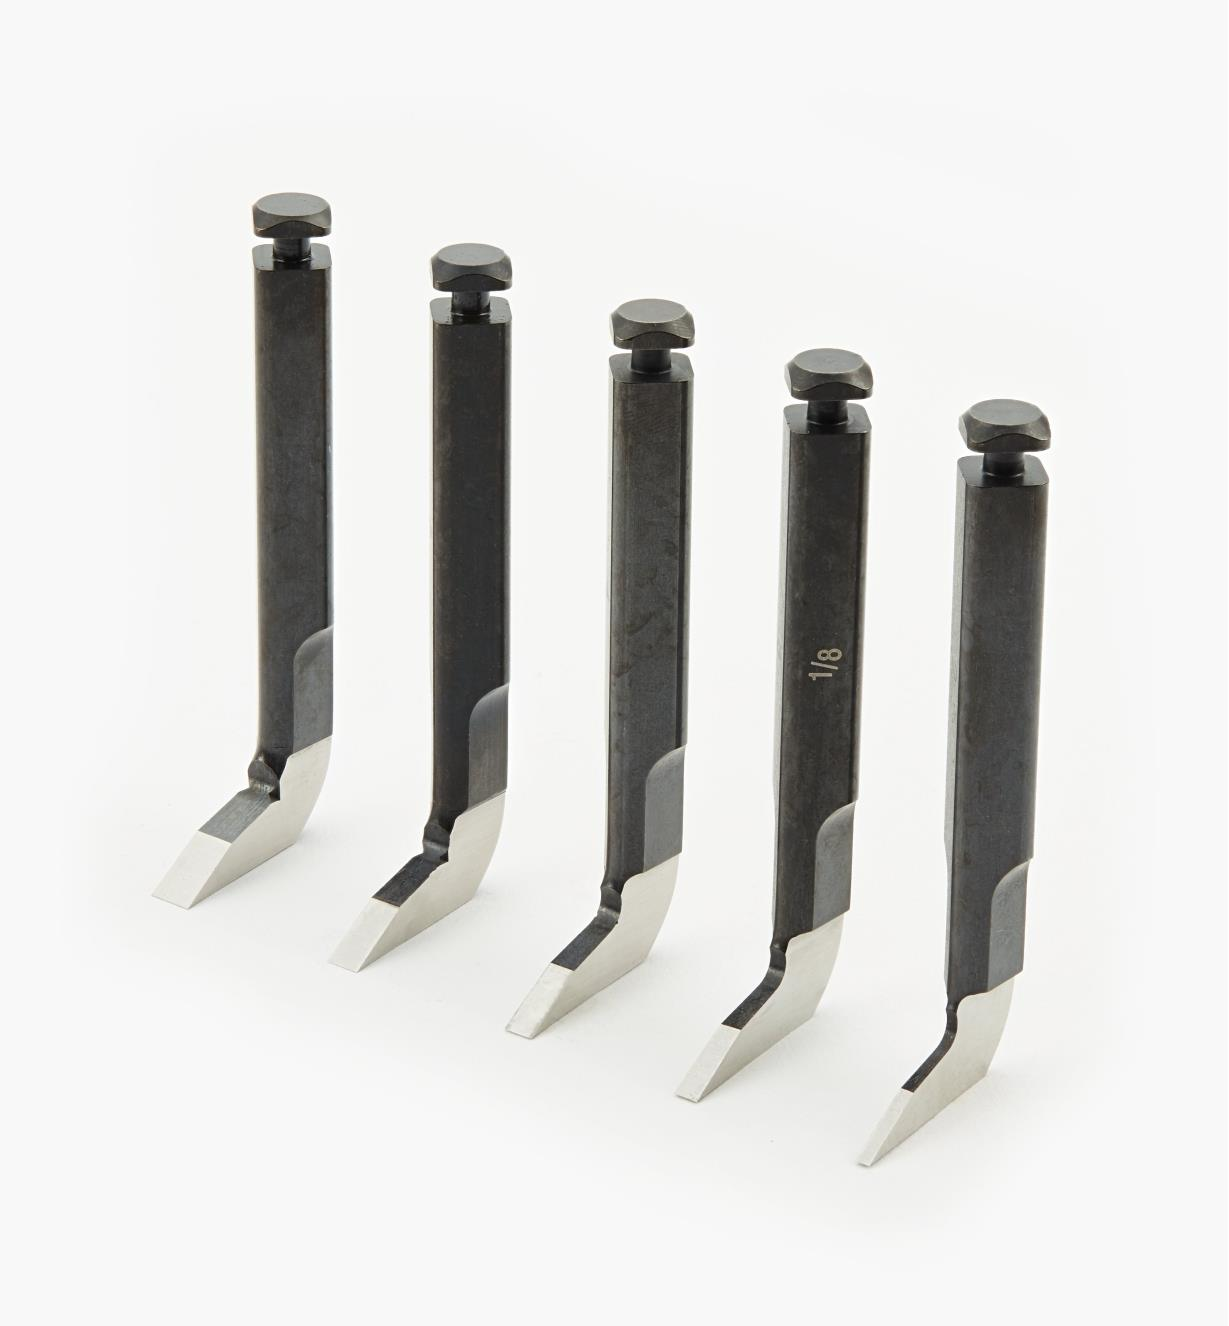 05P3843 - Set of 5 Metric Blades